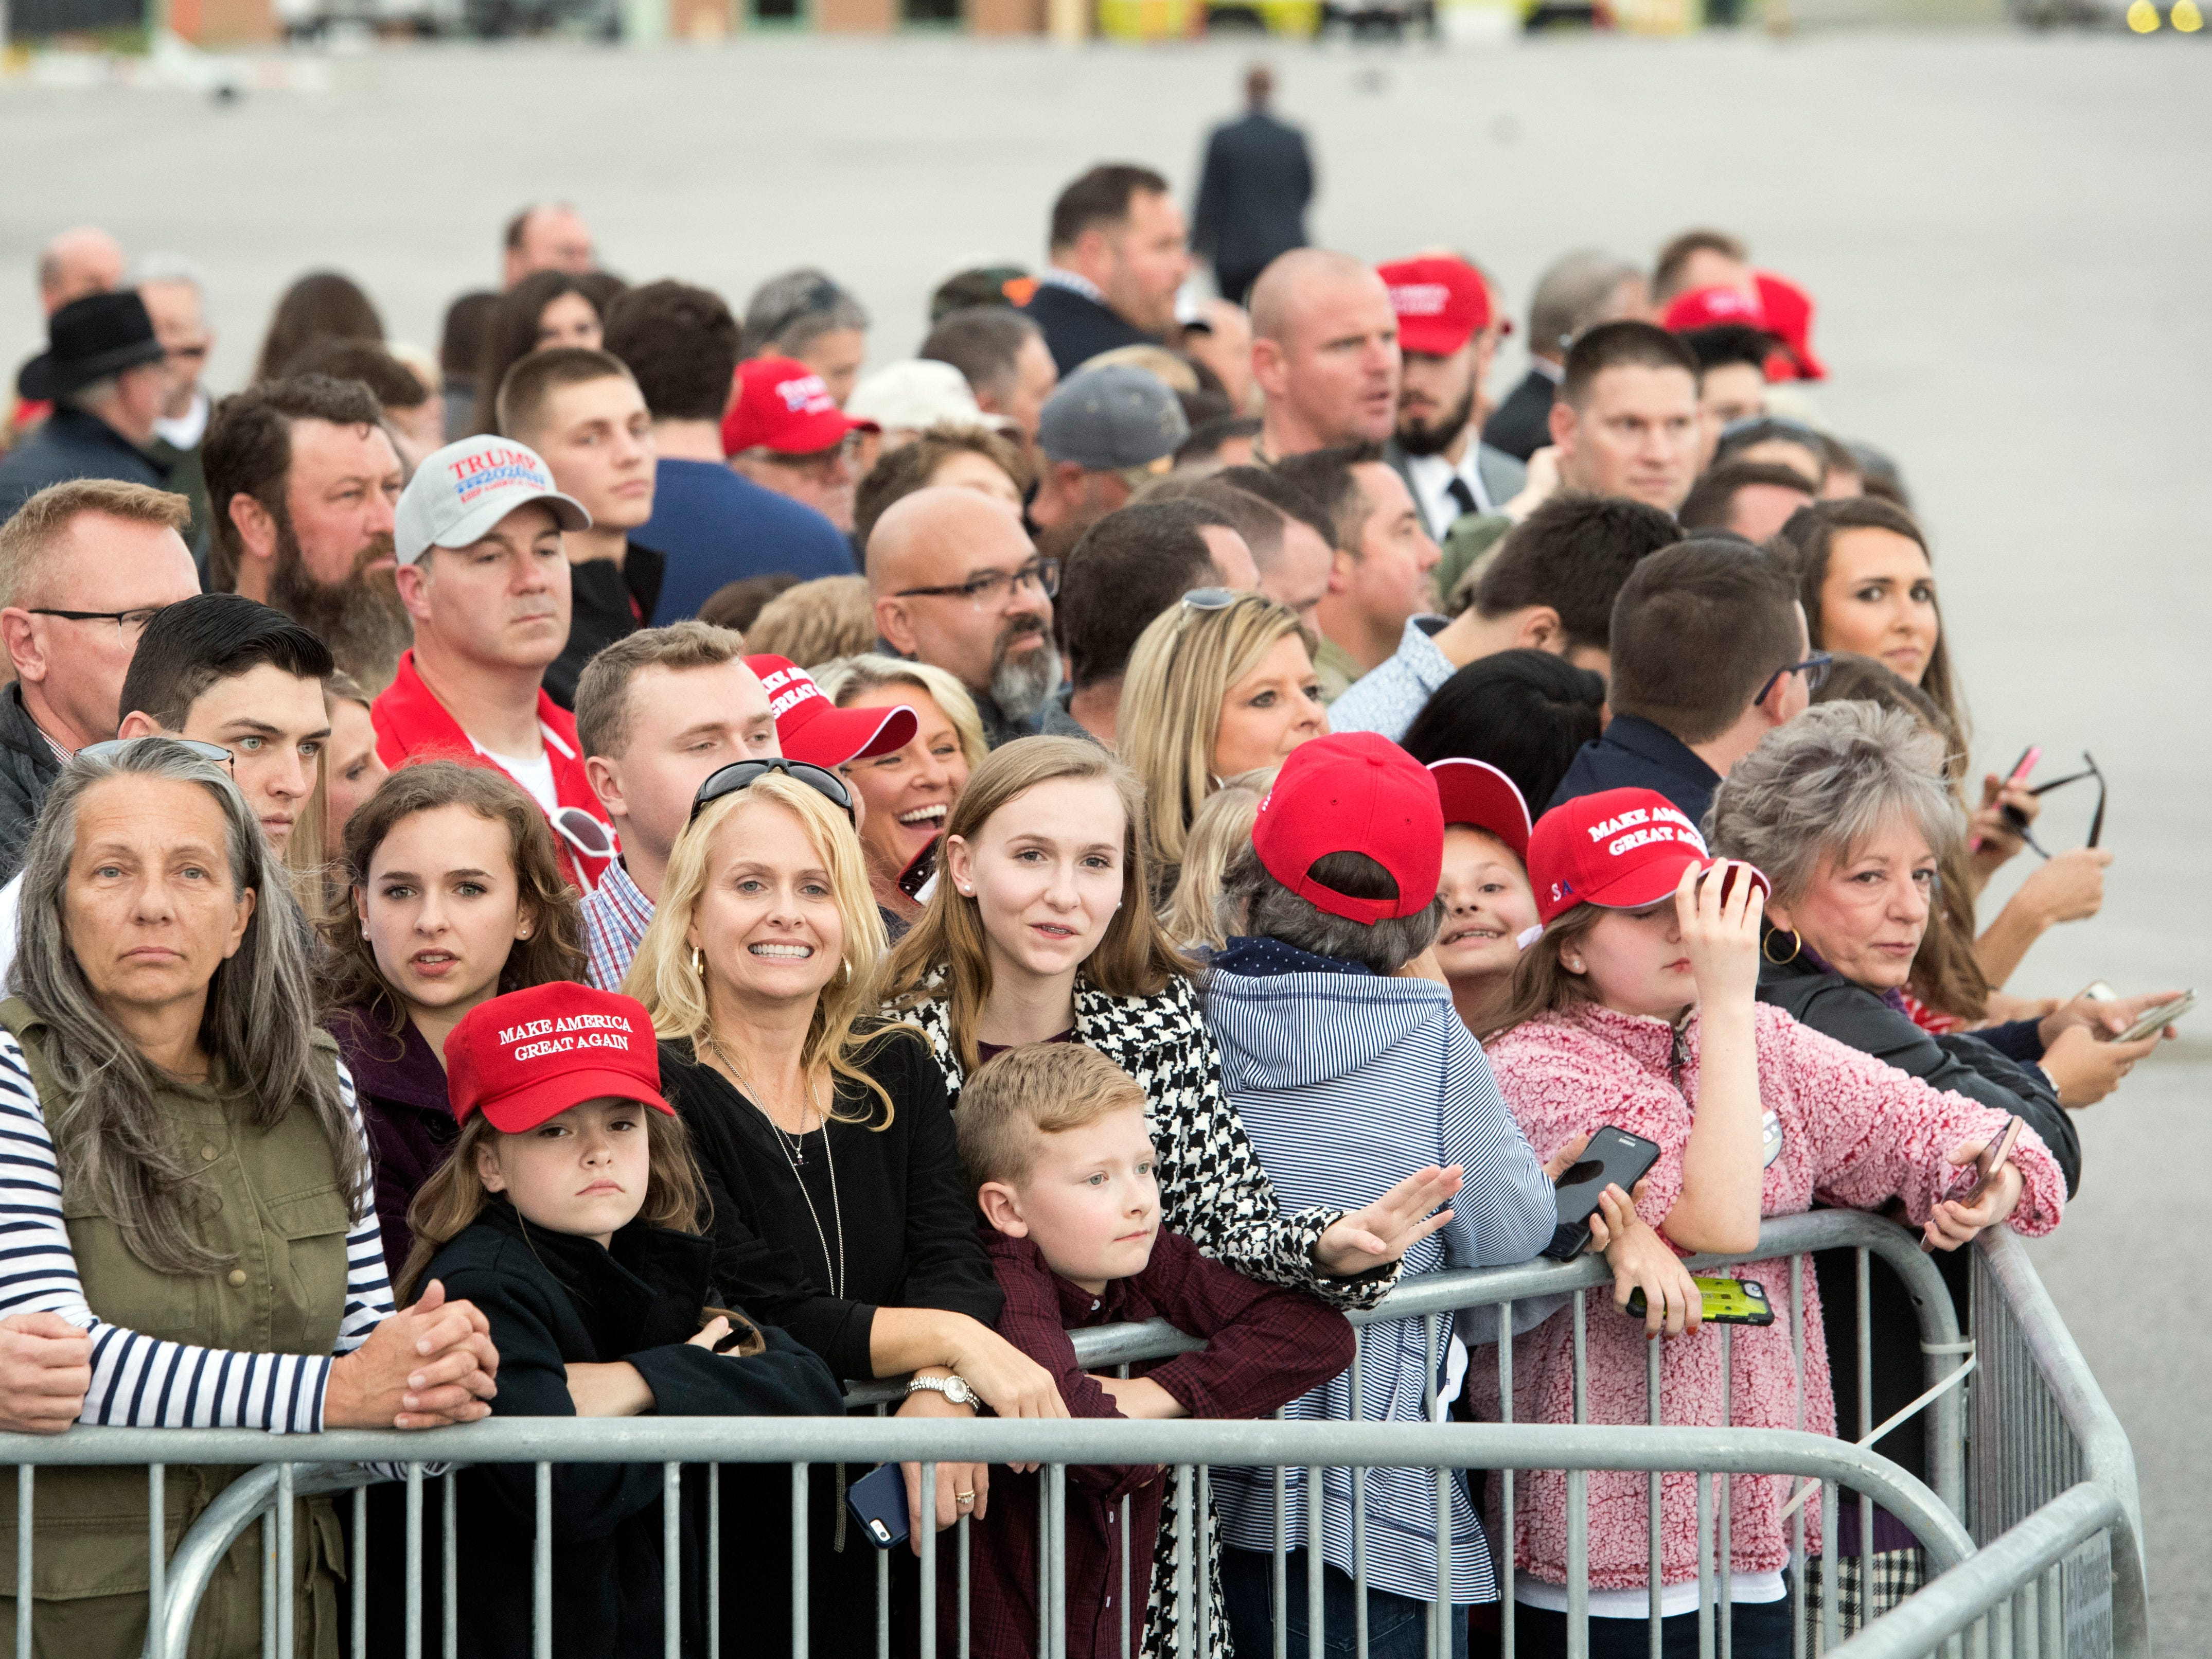 About 300 guests were invited to attend the arrival of President Donald Trump at Wilson Air Center at the Chattanooga Metropolitan Airport on Sunday, November 4, 2018.